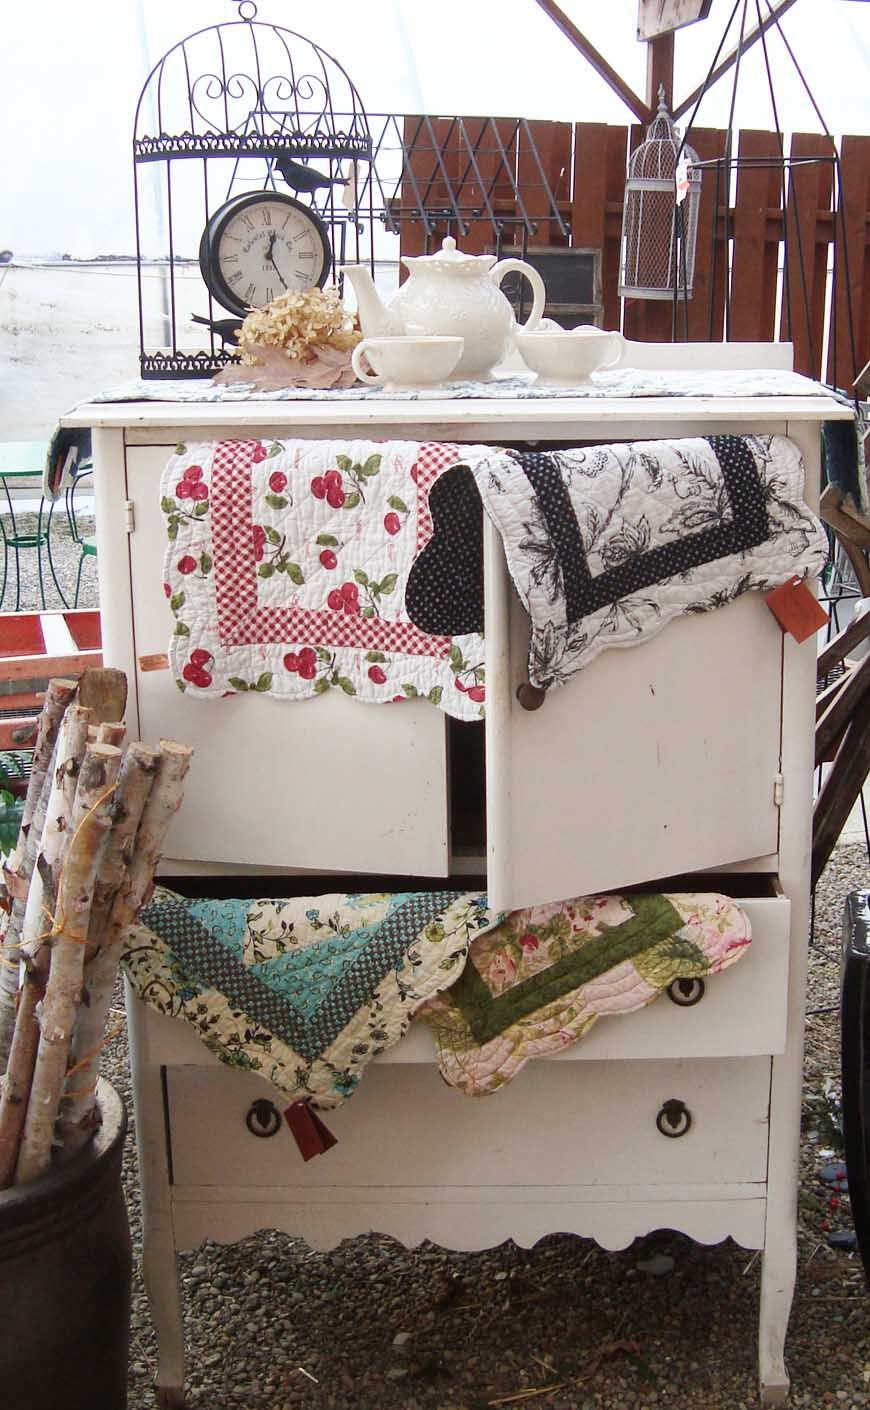 These hand quilted place mats and runners sure pretty up this vintage tea party!